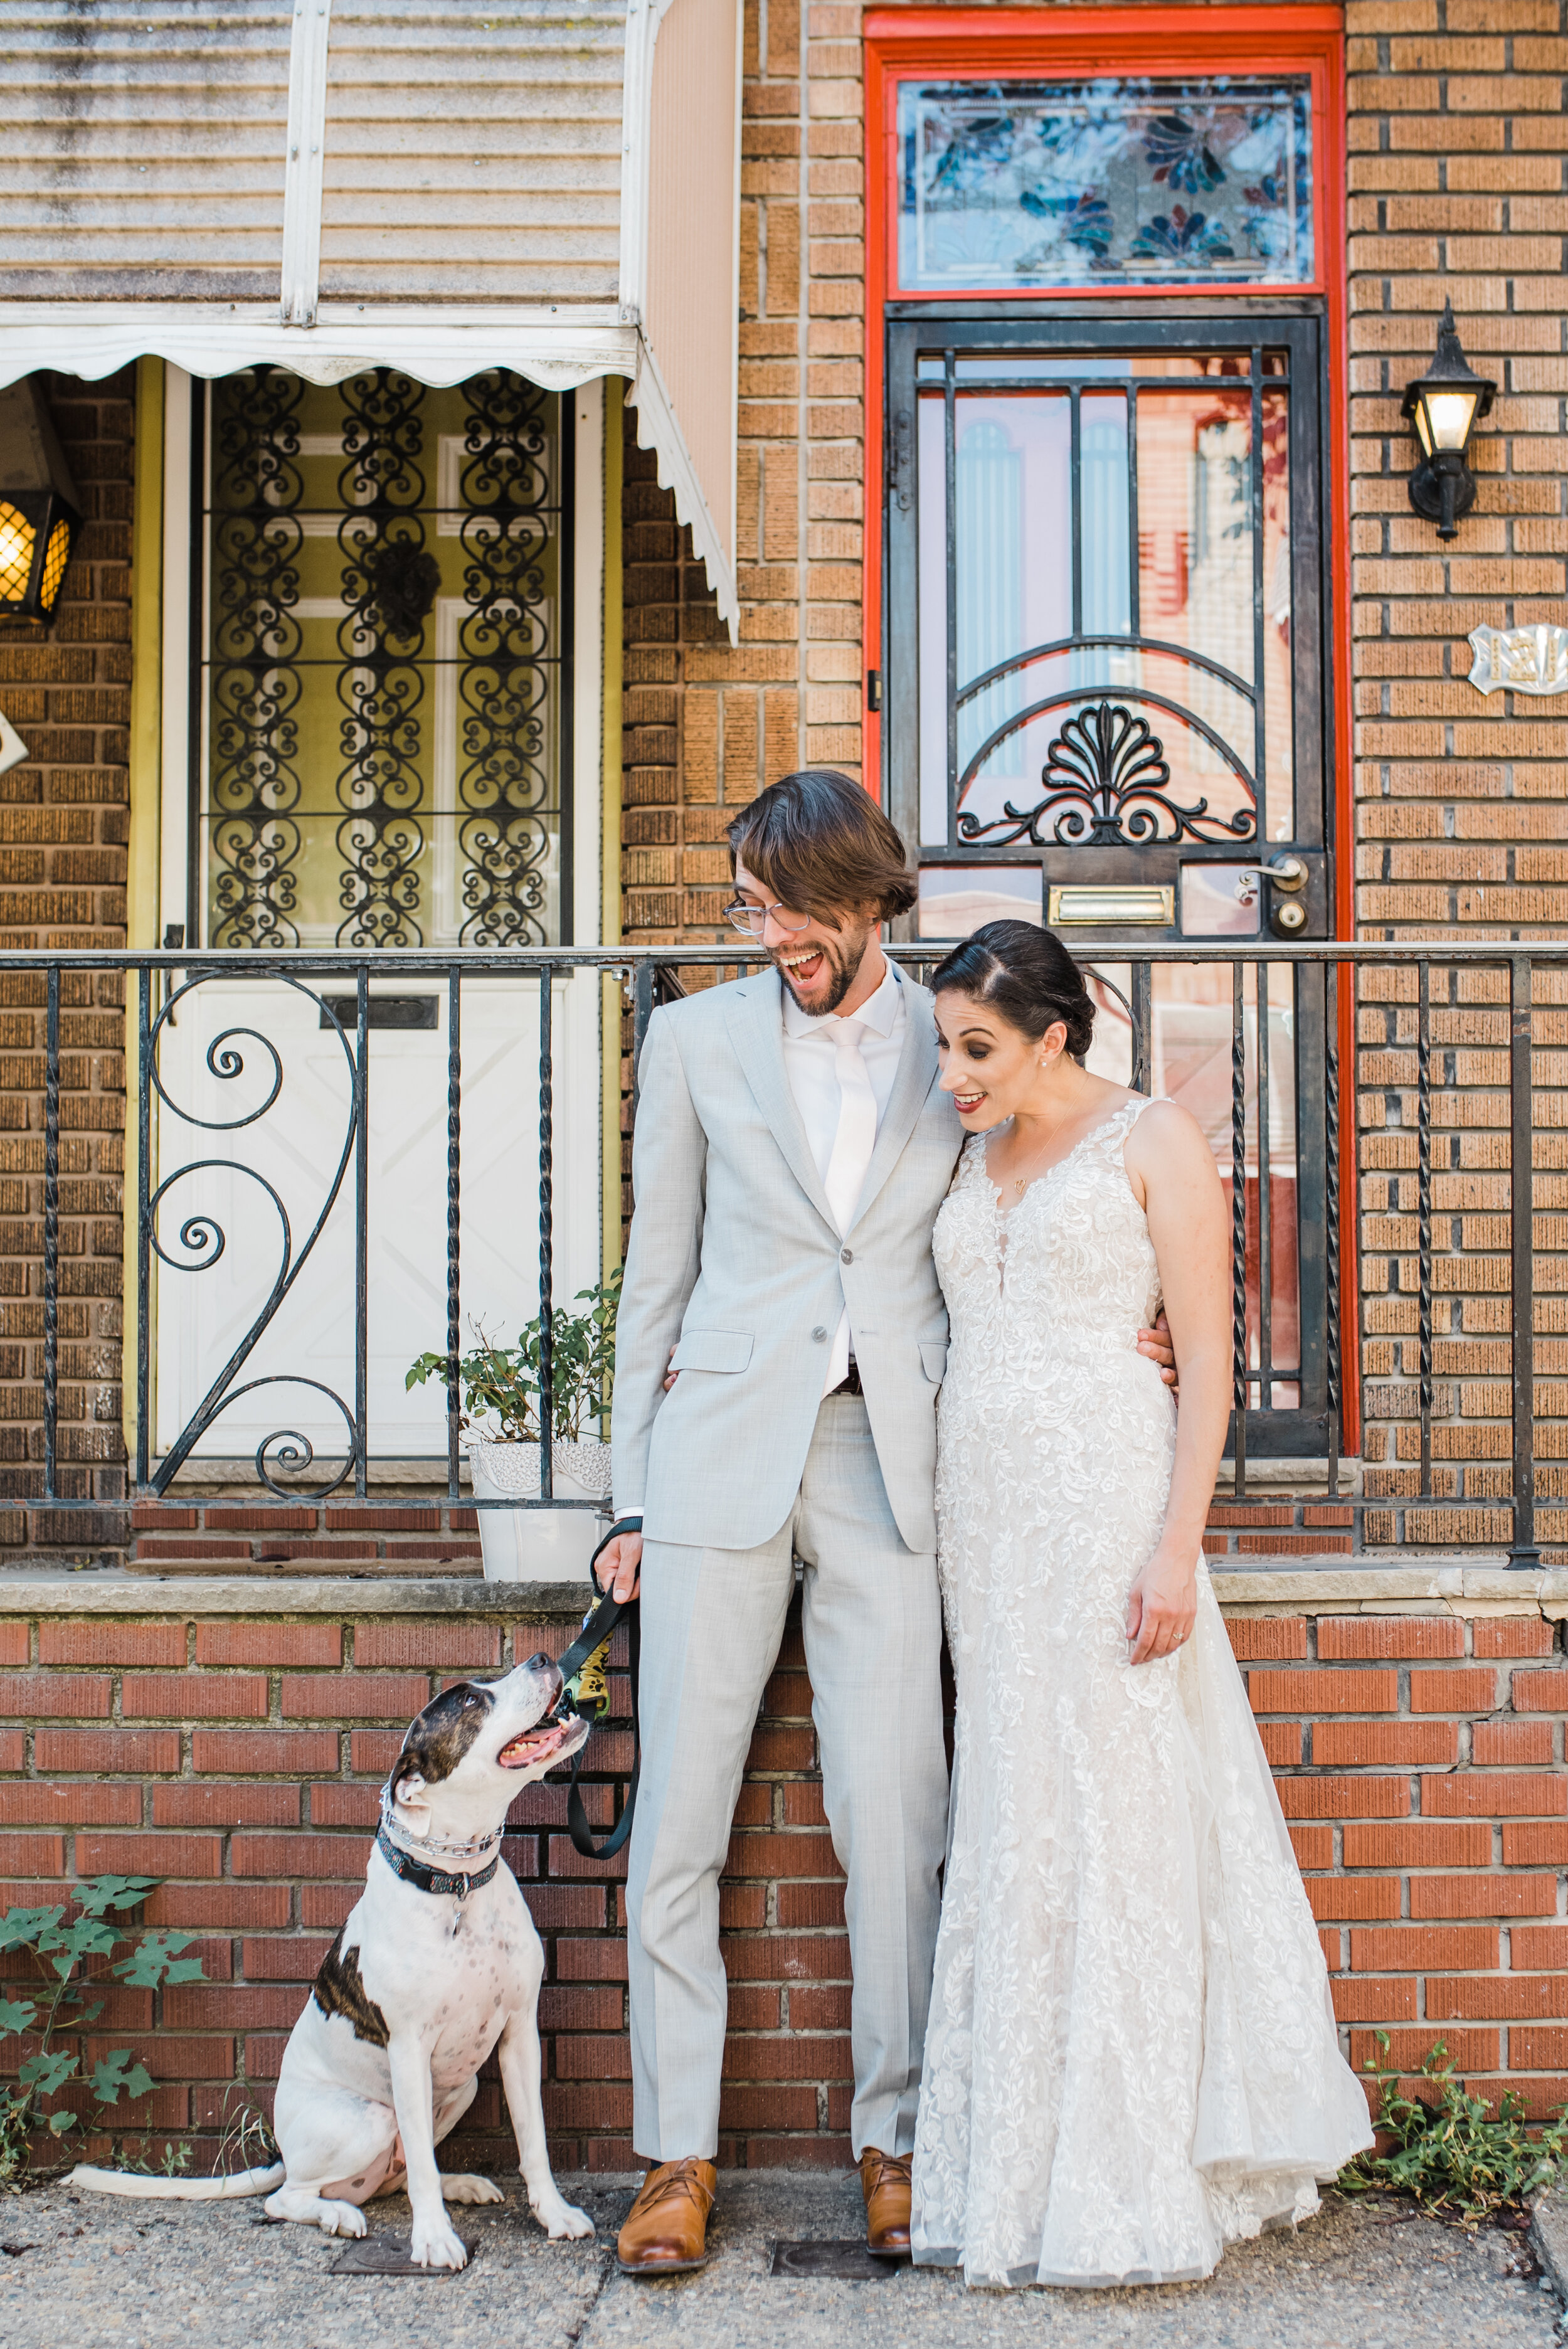 Wedding couple with their dog at their home.